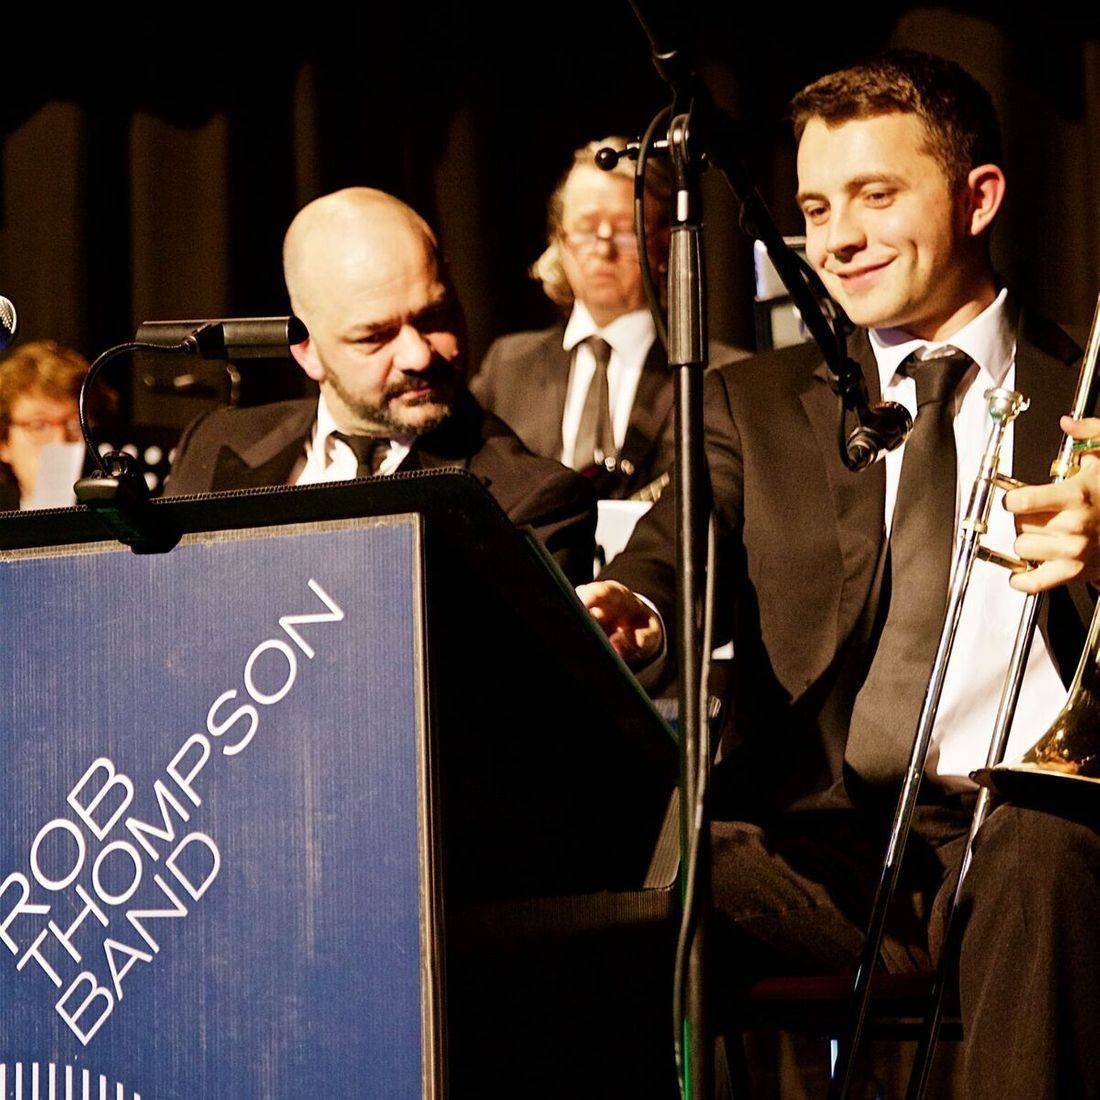 One night of Buble